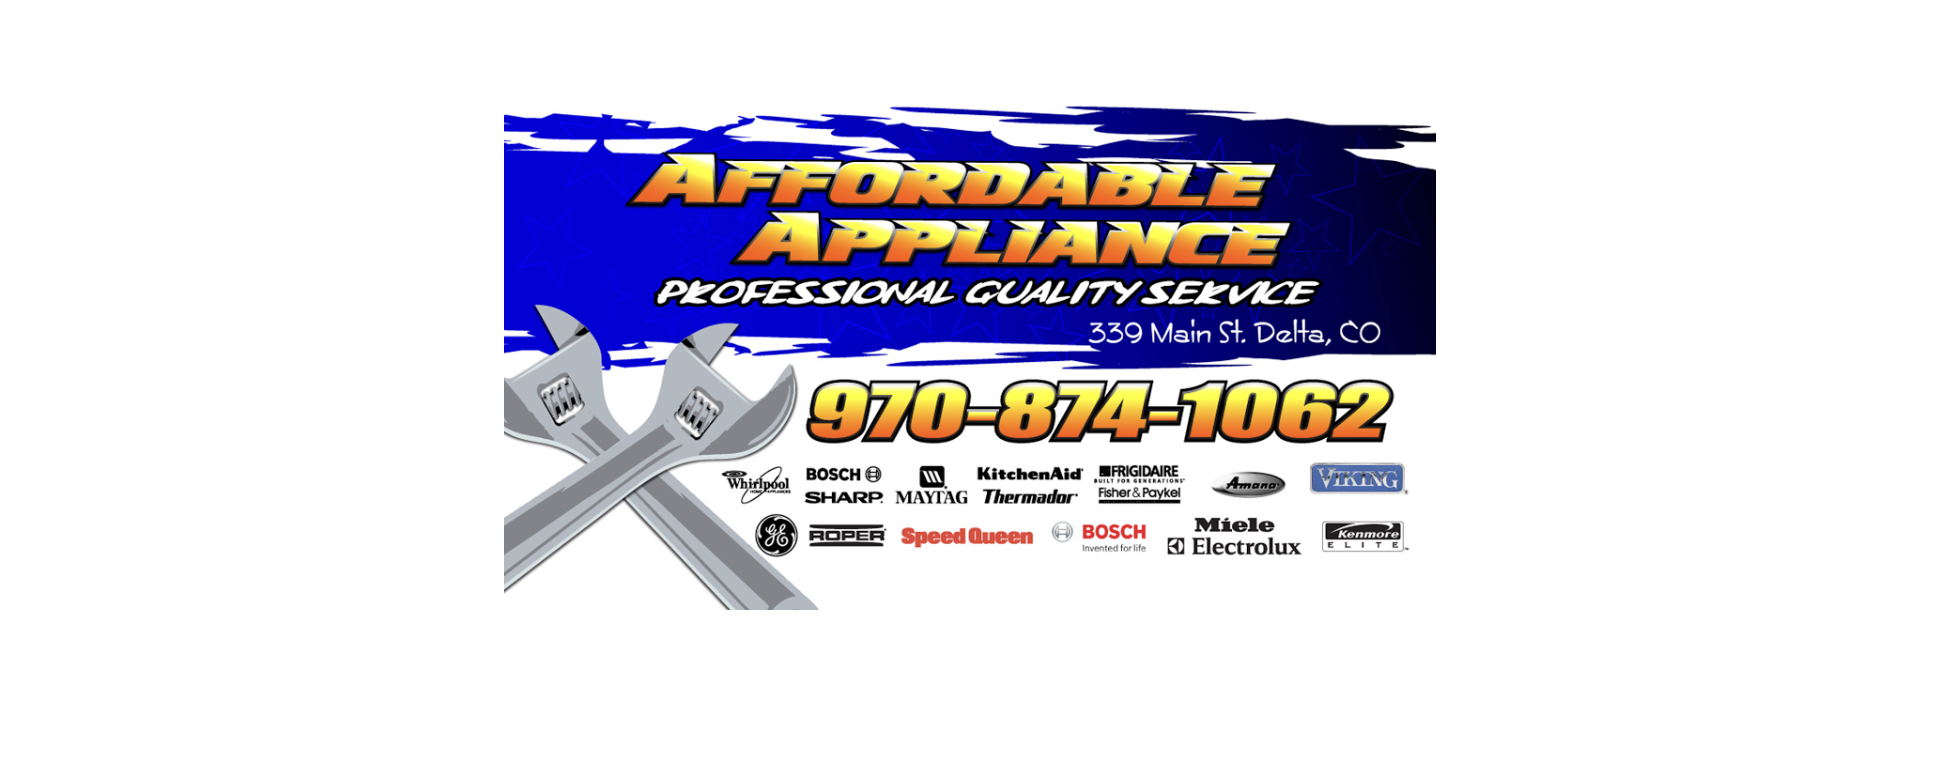 Affordable Appliance LLC